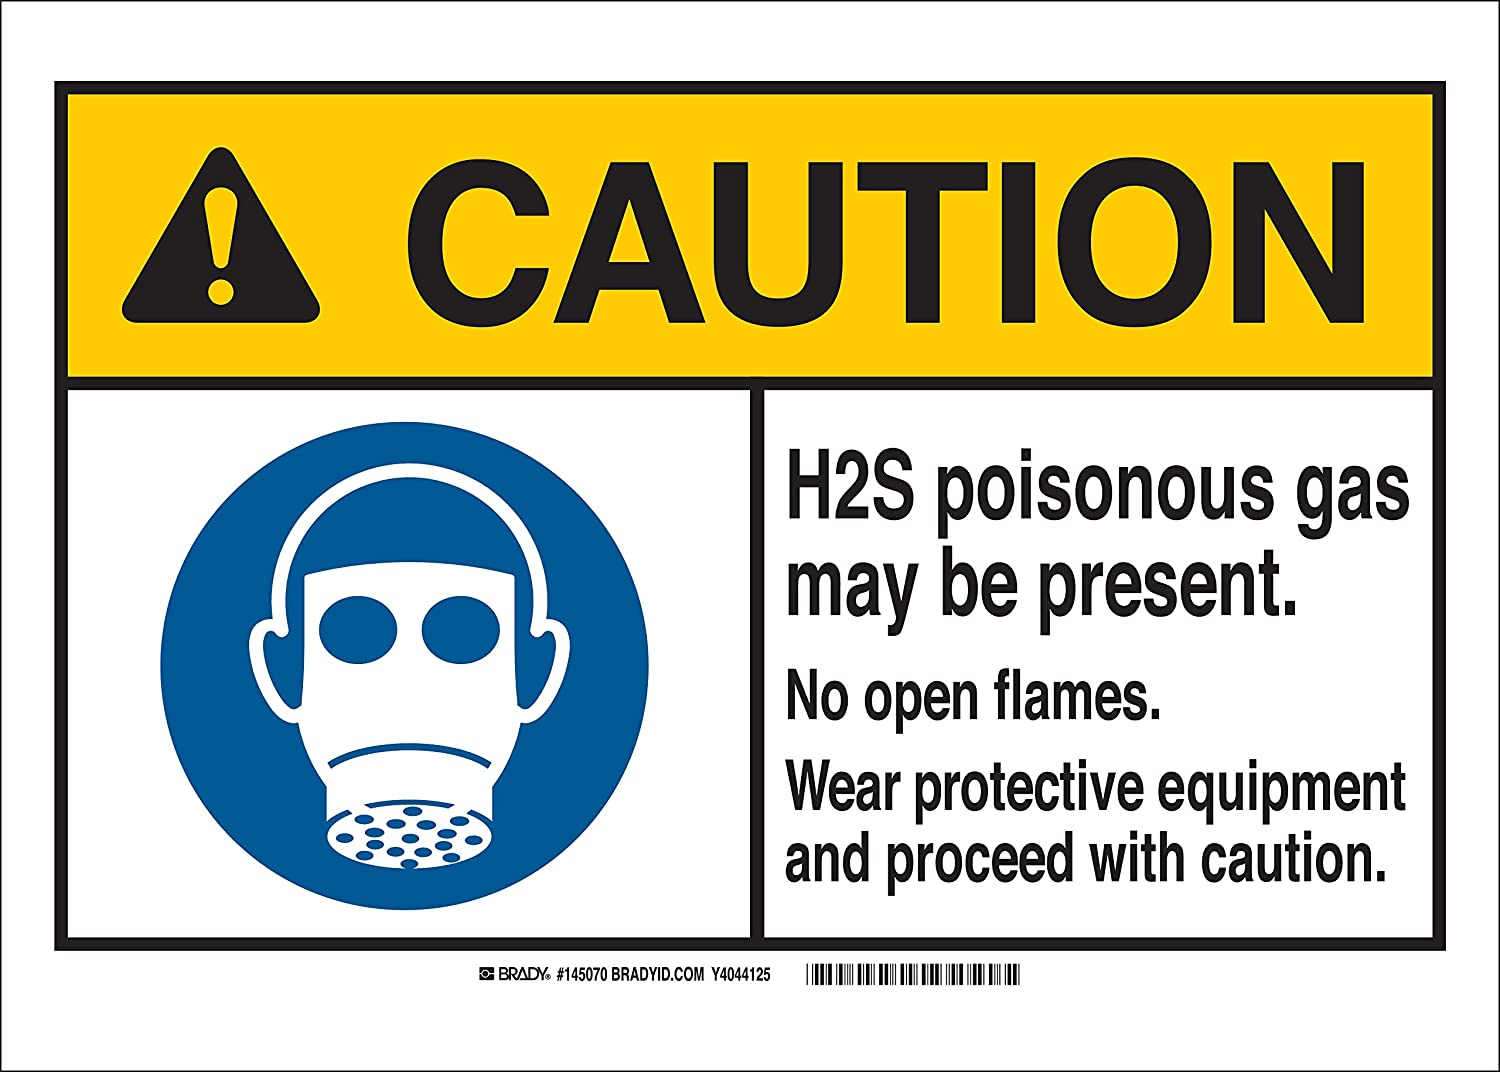 Brady 145070 AluminumCaution H2S Poisonous Gas May Be Present No Open Flames Wear Protective Equipment and Proceed with Caution Sign Black//Yellow on White 10 Height x 14 Width